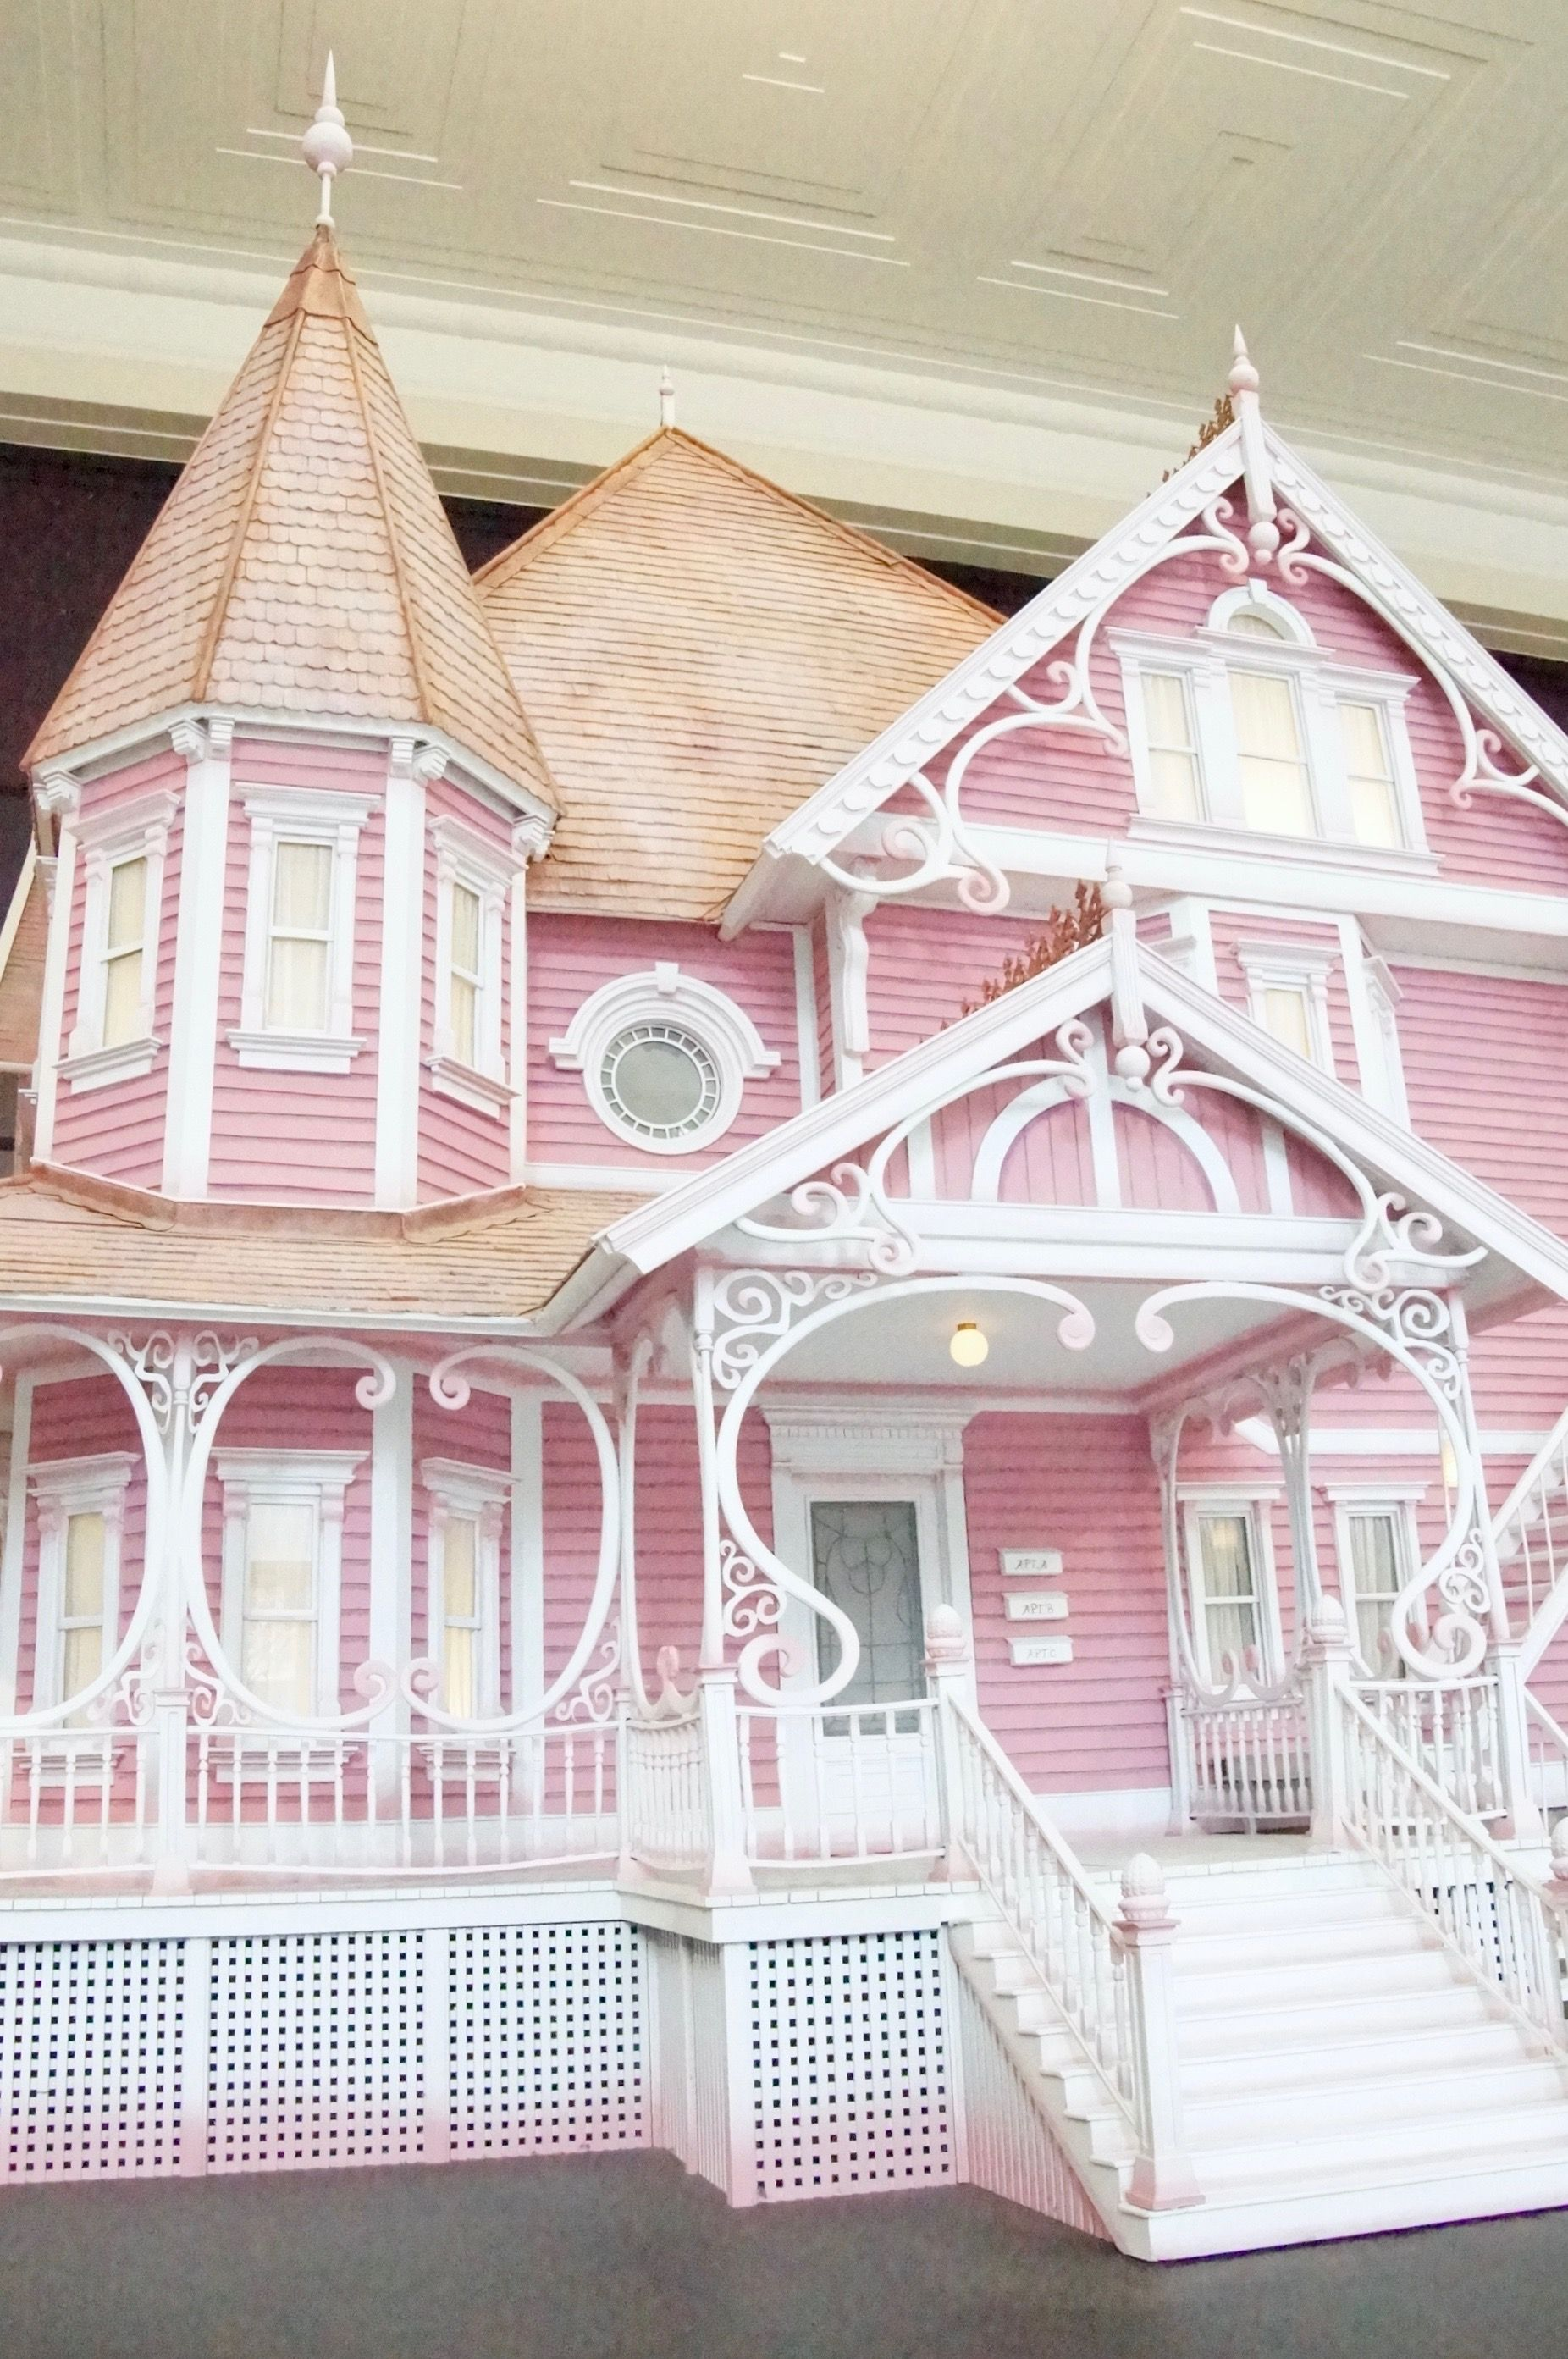 Coraline Set On Display At The Portland Art Museum House Styles Dream House Settings